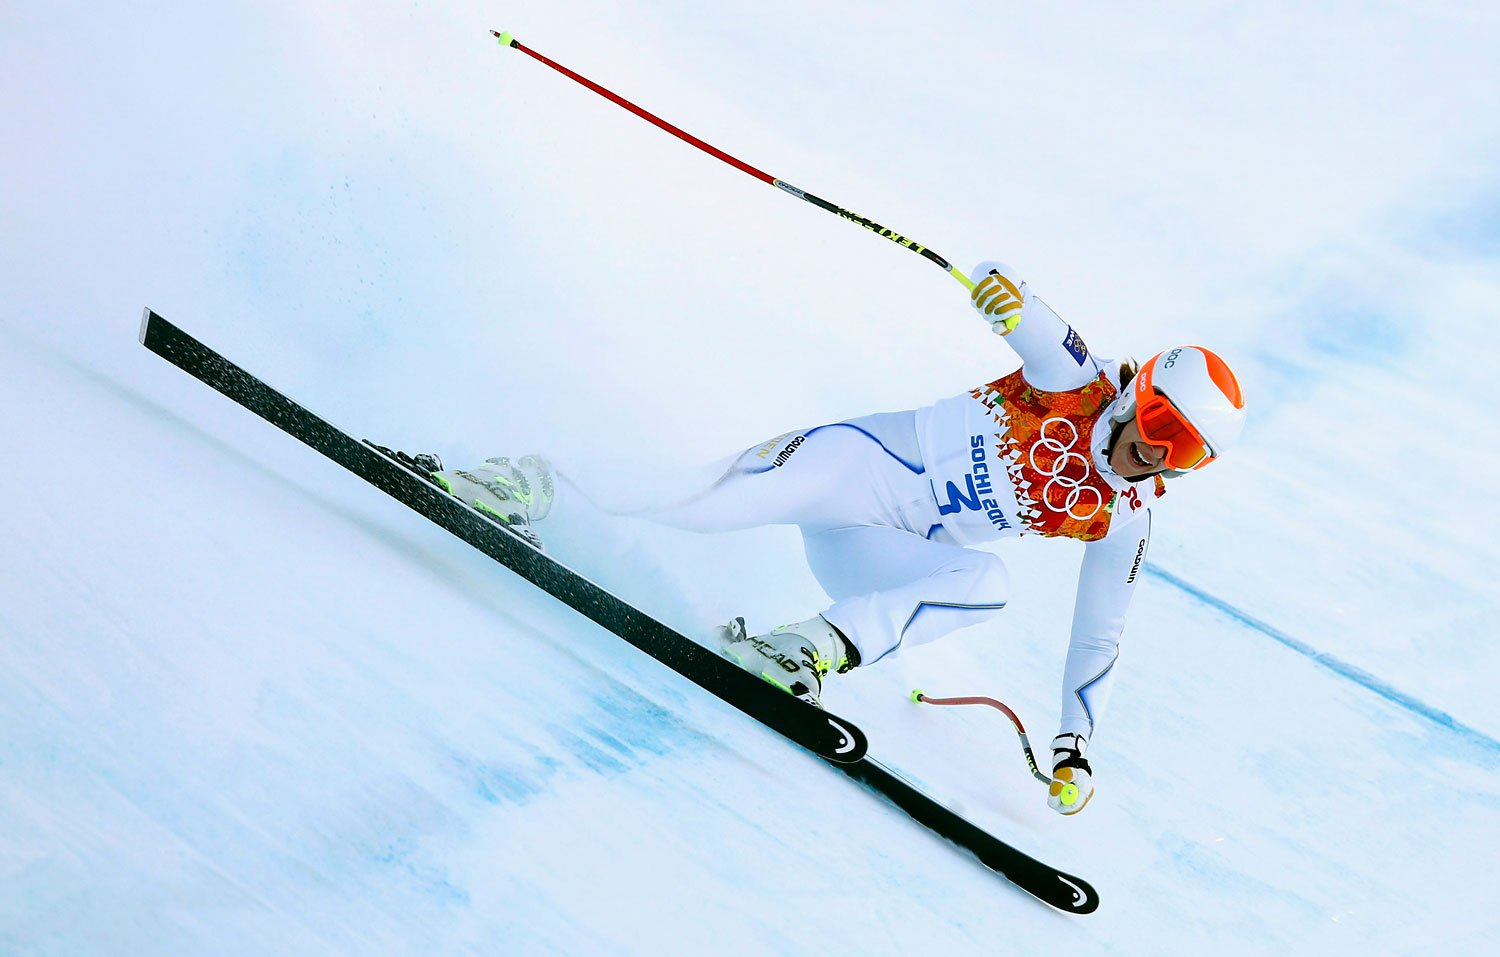 Sweden's Kajsa Kling speeds down the course in a training session for the women's alpine skiing downhill race during the 2014 Sochi Winter Olympics at the Rosa Khutor Alpine Center Feb. 8, 2014.